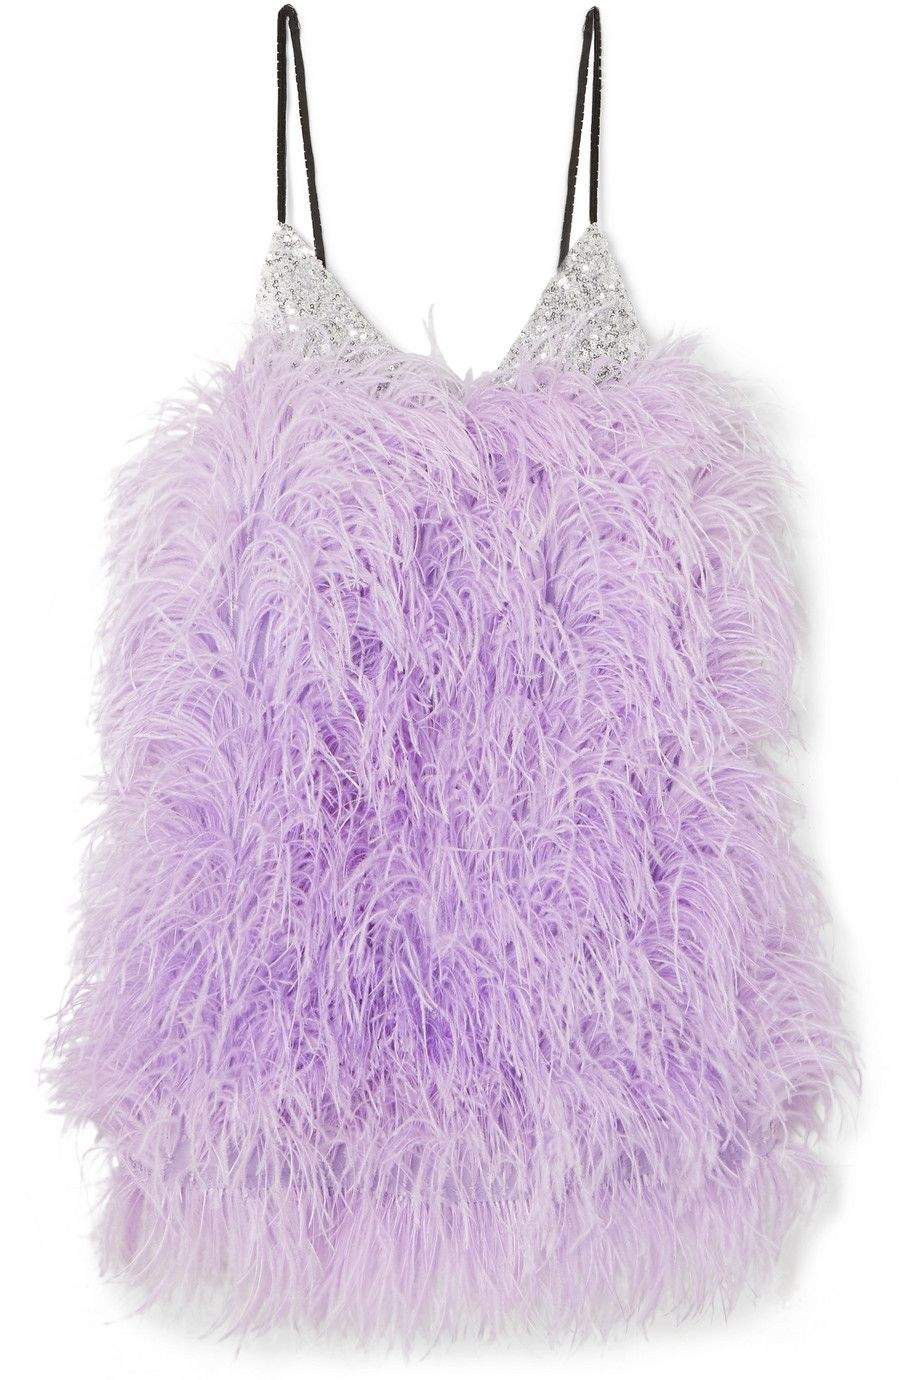 attico-lilac-feather-embellished-silver-sequined-tulle-mini-dress-spring-2019